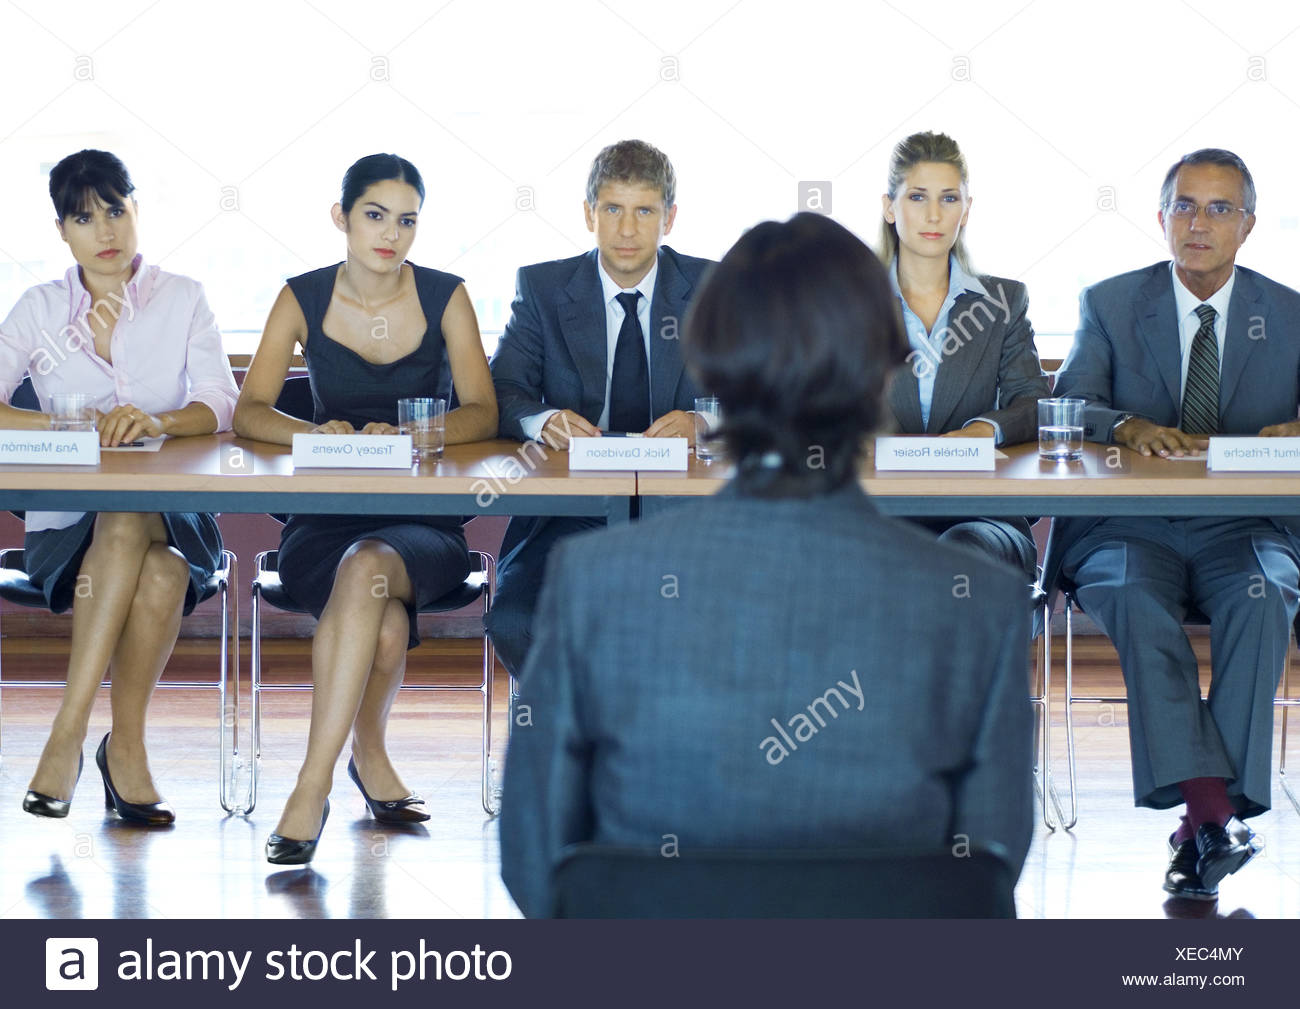 Executives sitting at conference table, looking at man in foreground - Stock Image